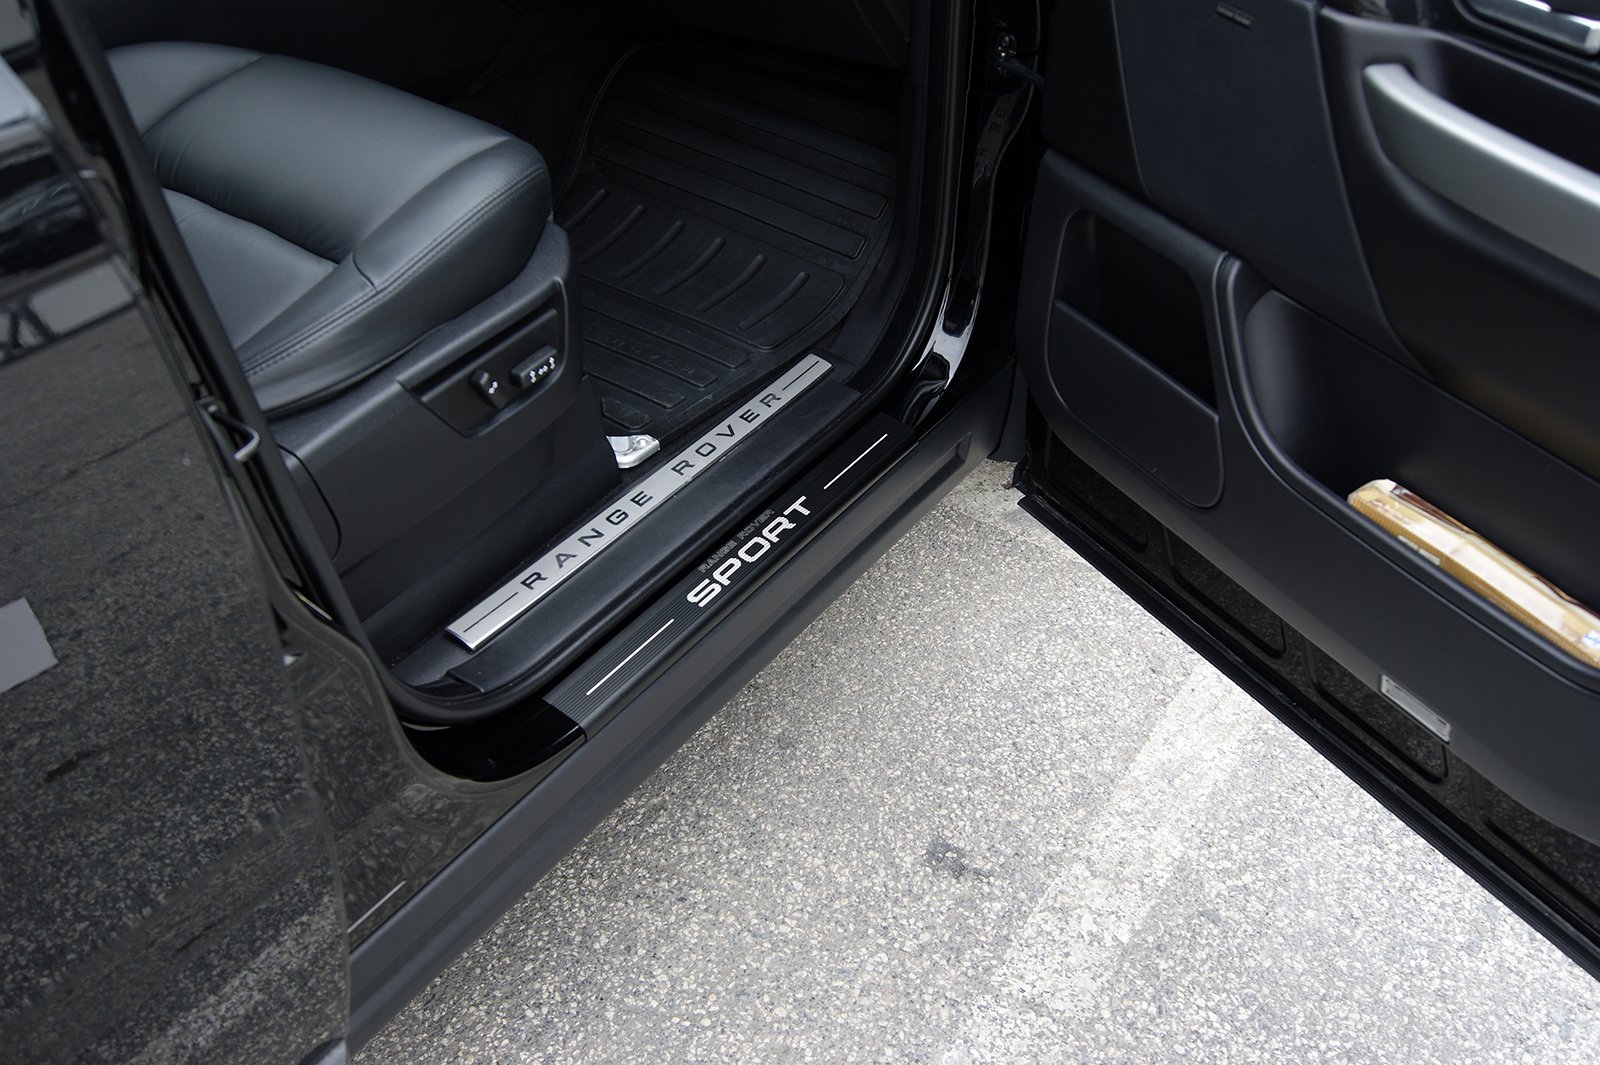 BARMECA Range Rover Sport 2005-2013 Door Sill Covers Set of 4 by BARMECA (Image #4)